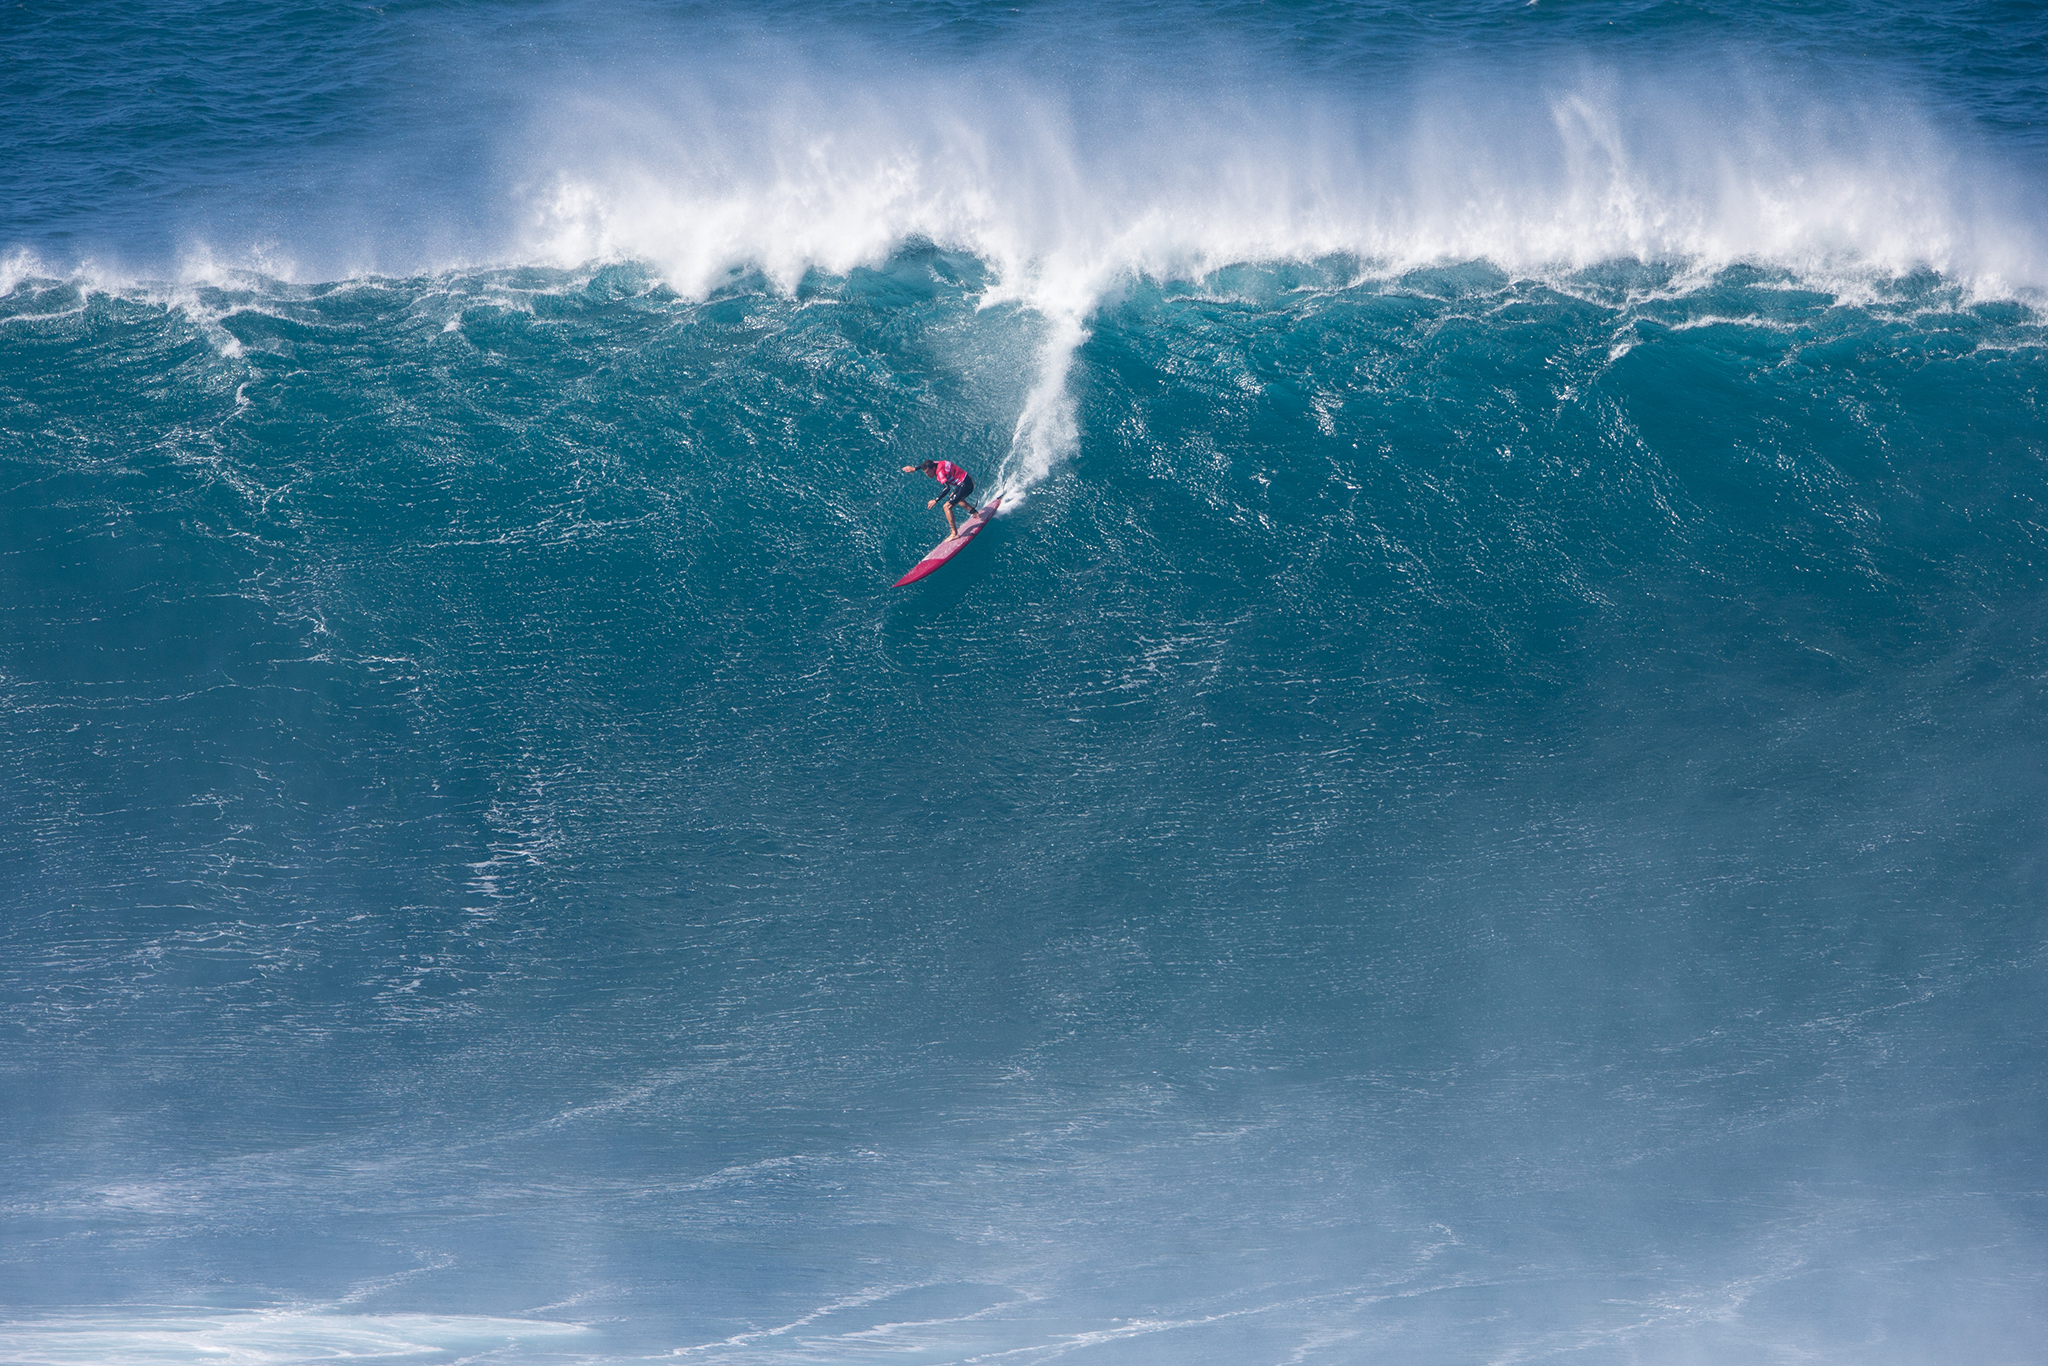 Greg Long during the Final of the Peahi Challenge at Jaws in Hawaii.